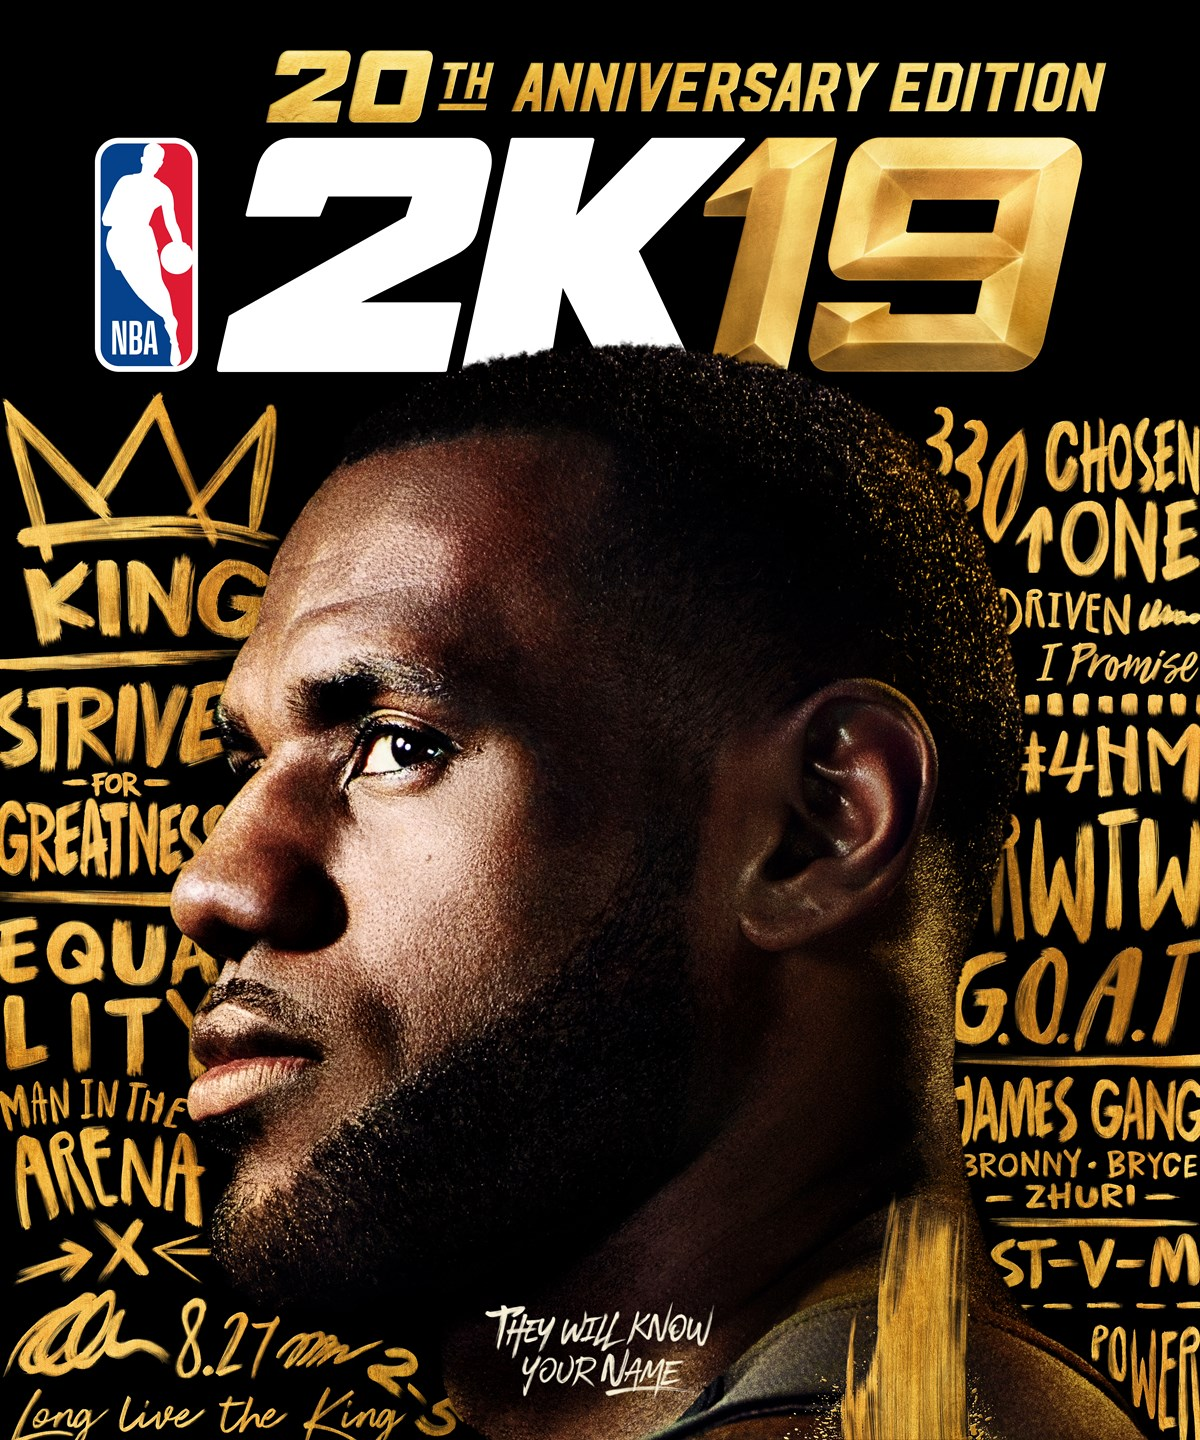 NBA2K19 20AE Art